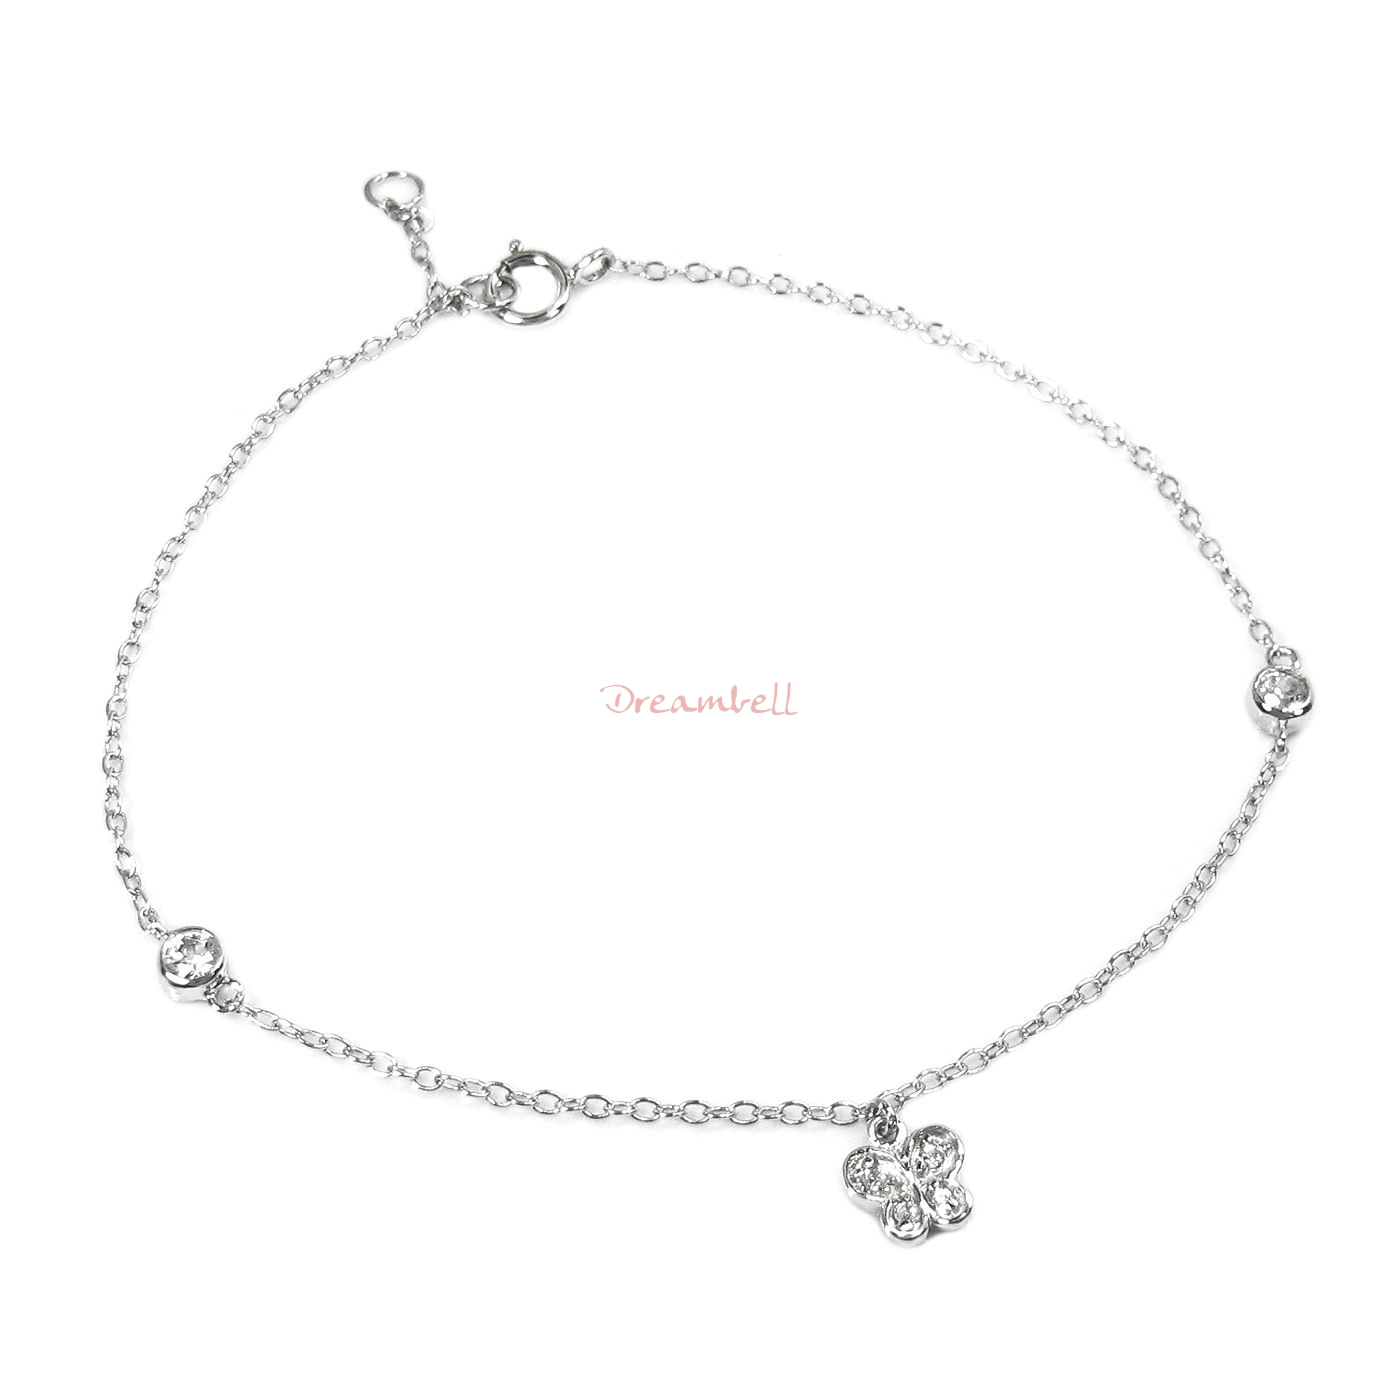 Rhodium on Sterling Silver Butterfly Clear CZ Crystal Charm Link Chain Anklet w/ Extender Spring Clasp 7""